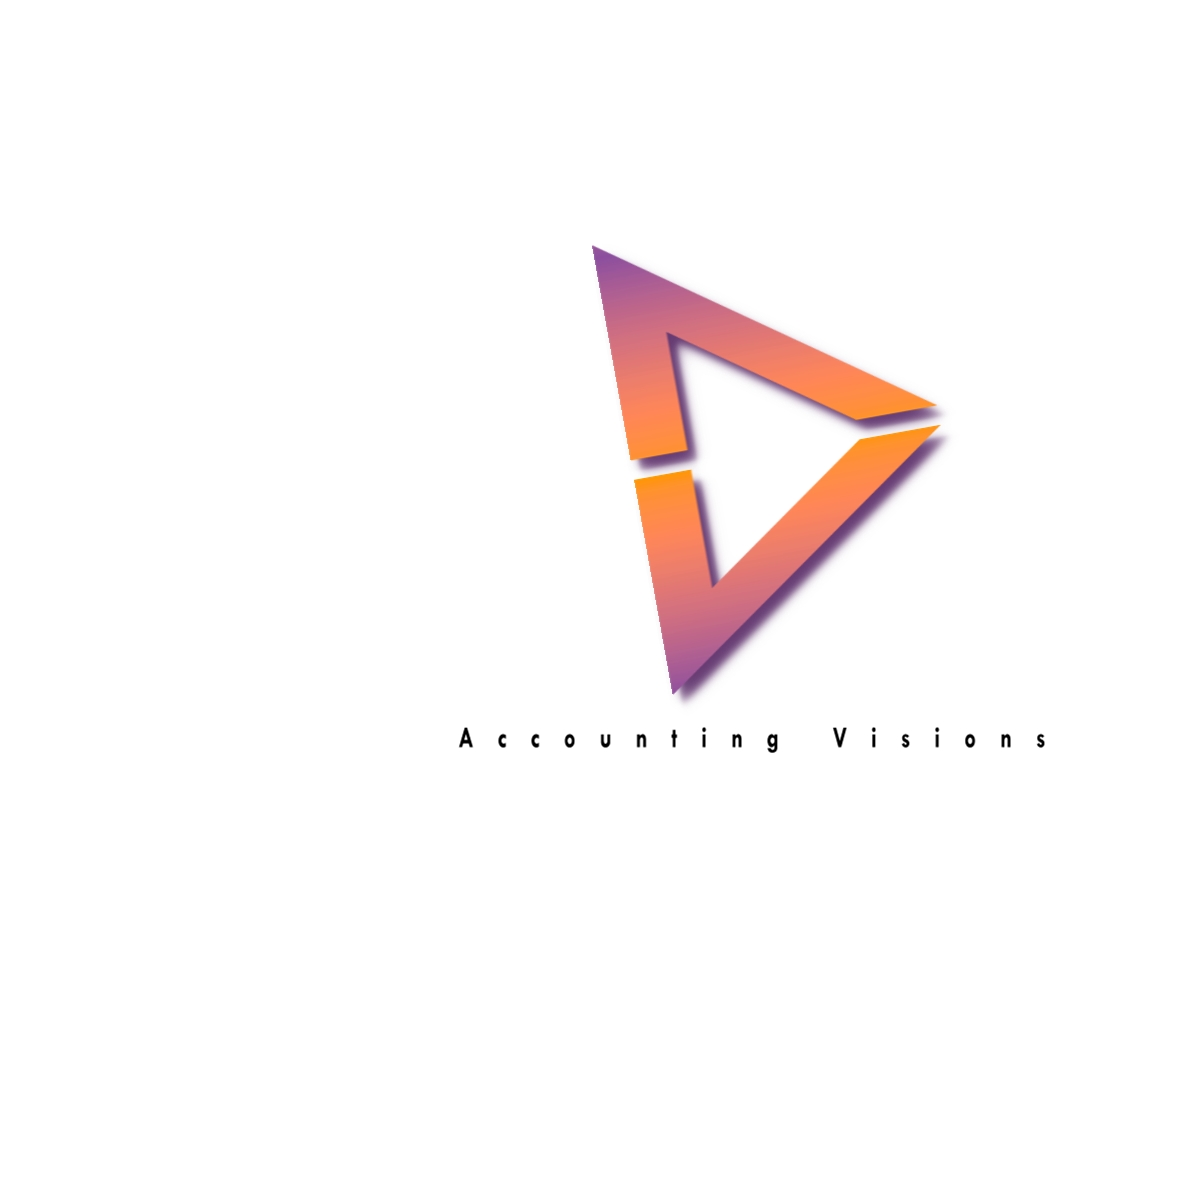 Logo Design by Joseph calunsag Cagaanan - Entry No. 50 in the Logo Design Contest Accounting Visions.